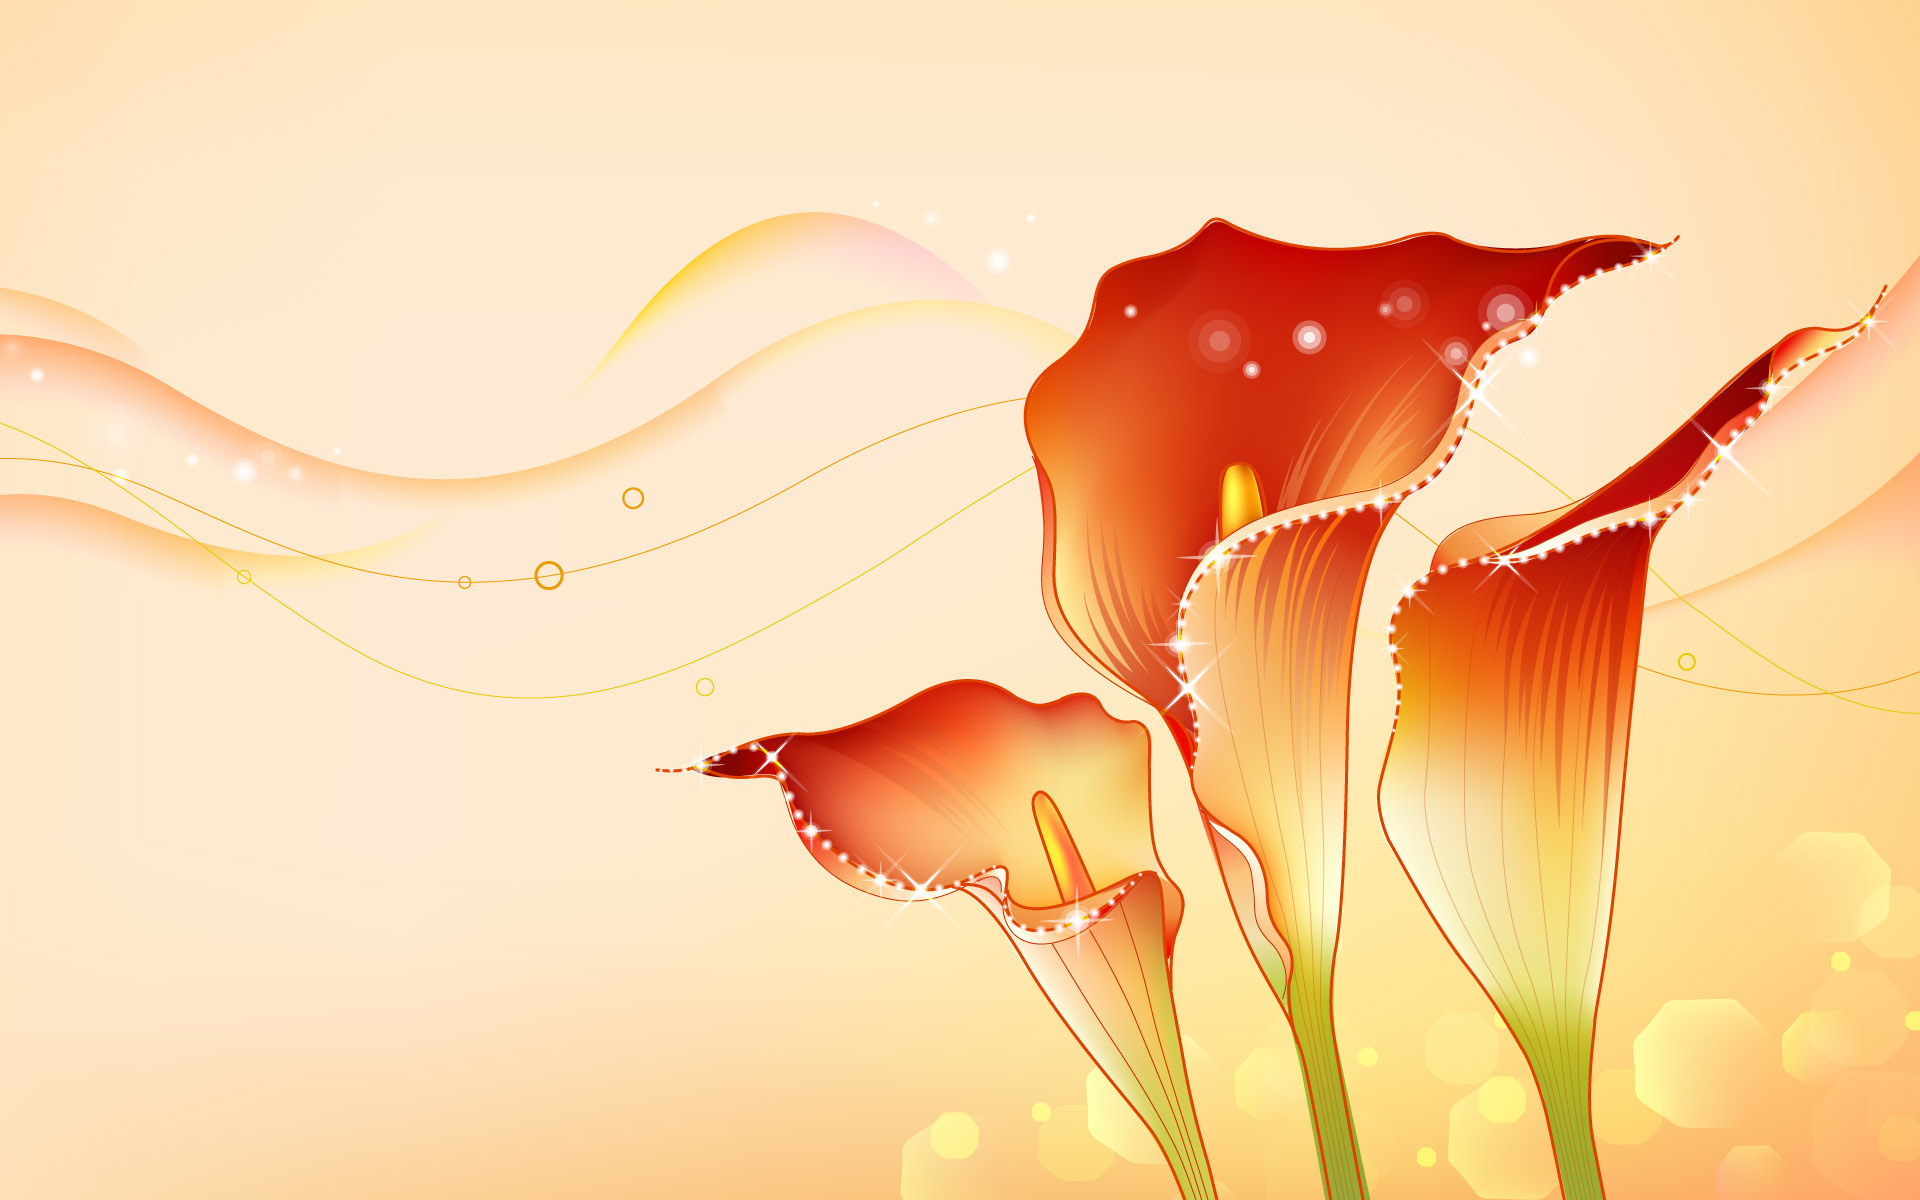 Abstract Hqpictures Designs Flowers Photocombo Design HD wallpapers 1920x1200